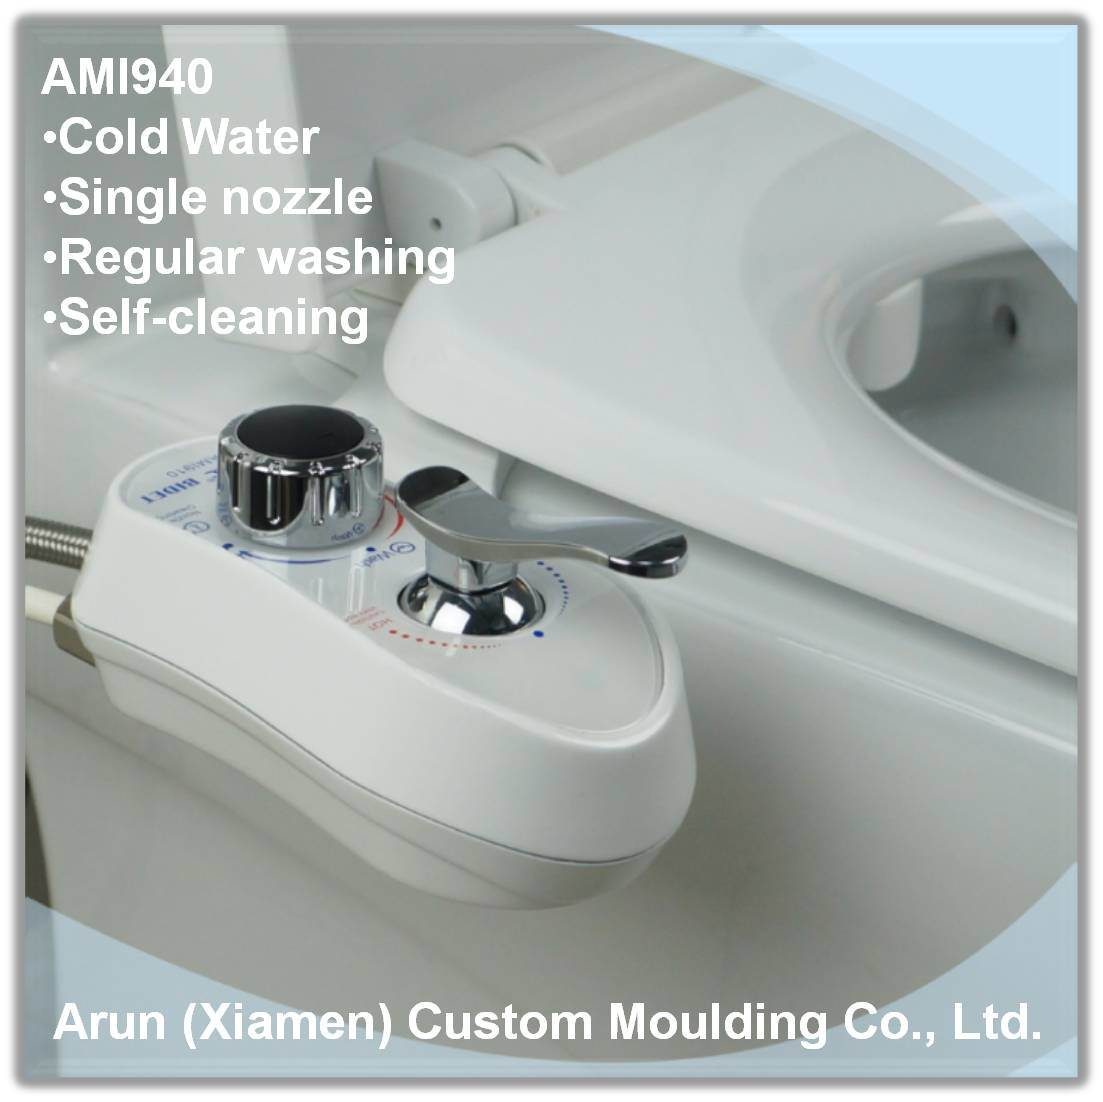 China Ami930 Bio Bidet Attached Under The Toilet Seat, Cold Water ...